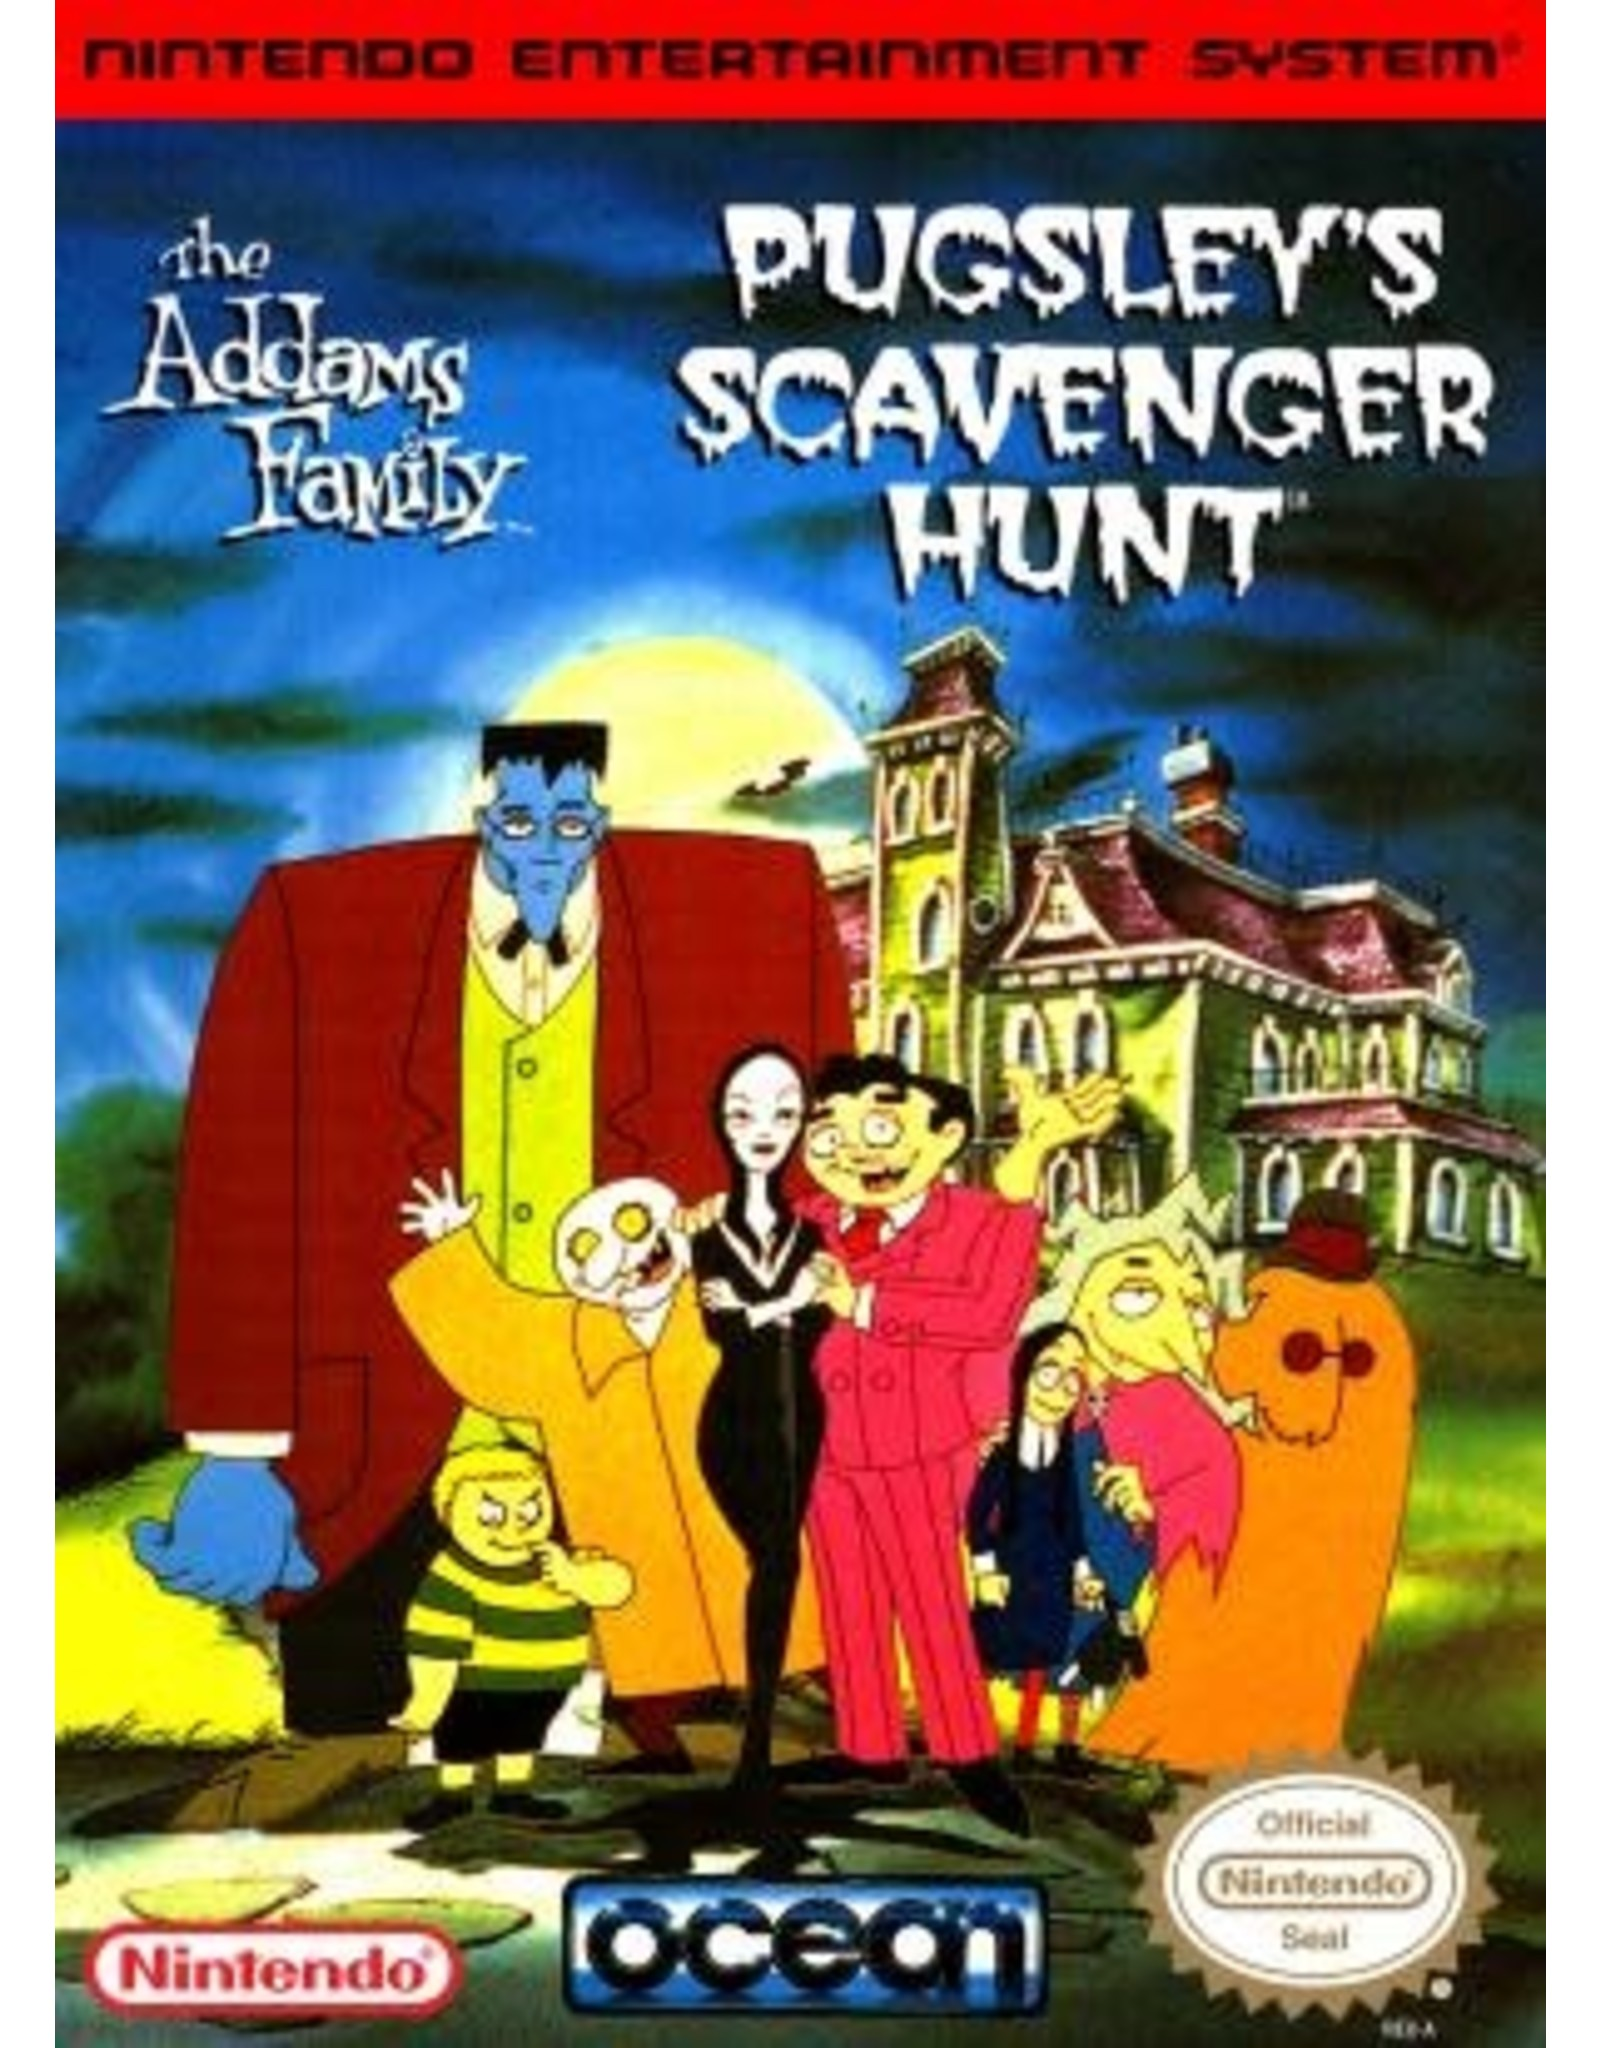 NES Addams Family Pugsley's Scavenger Hunt (Cart Only)